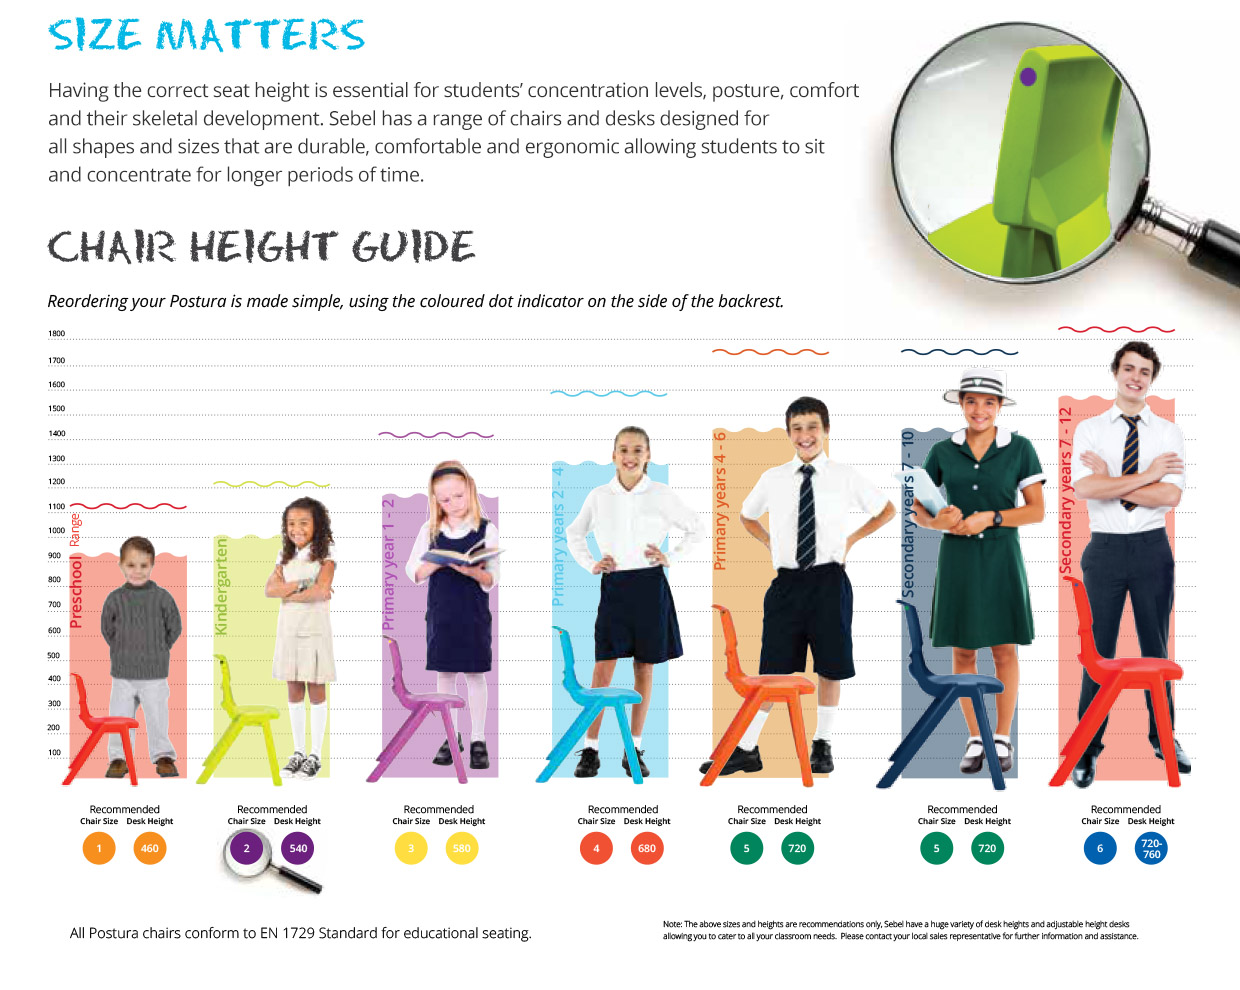 Sebel Chair Height Guide